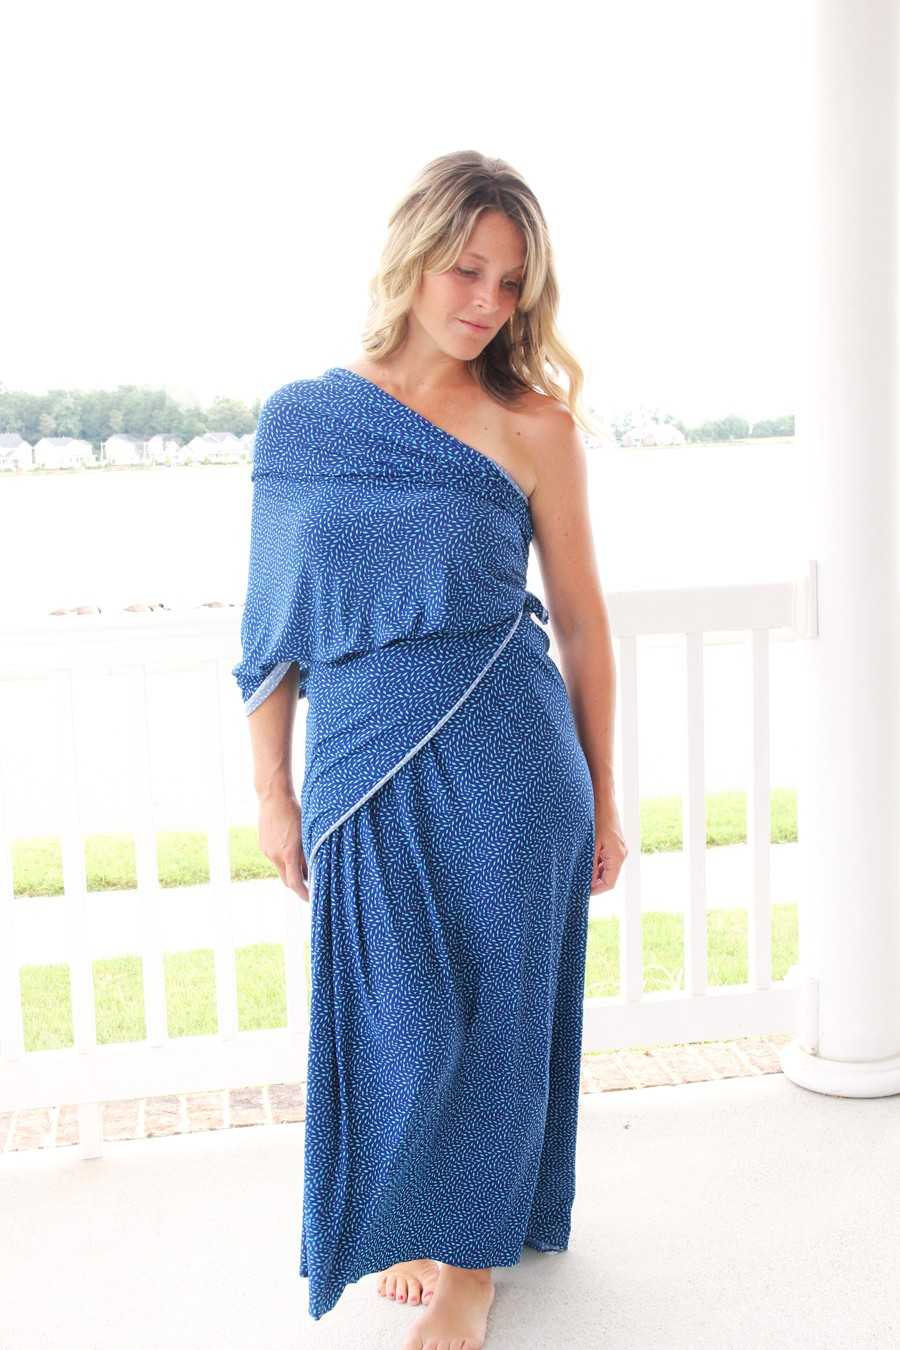 how to strategically wrap knit fabric to make a gorgeous no sew maxi dress!